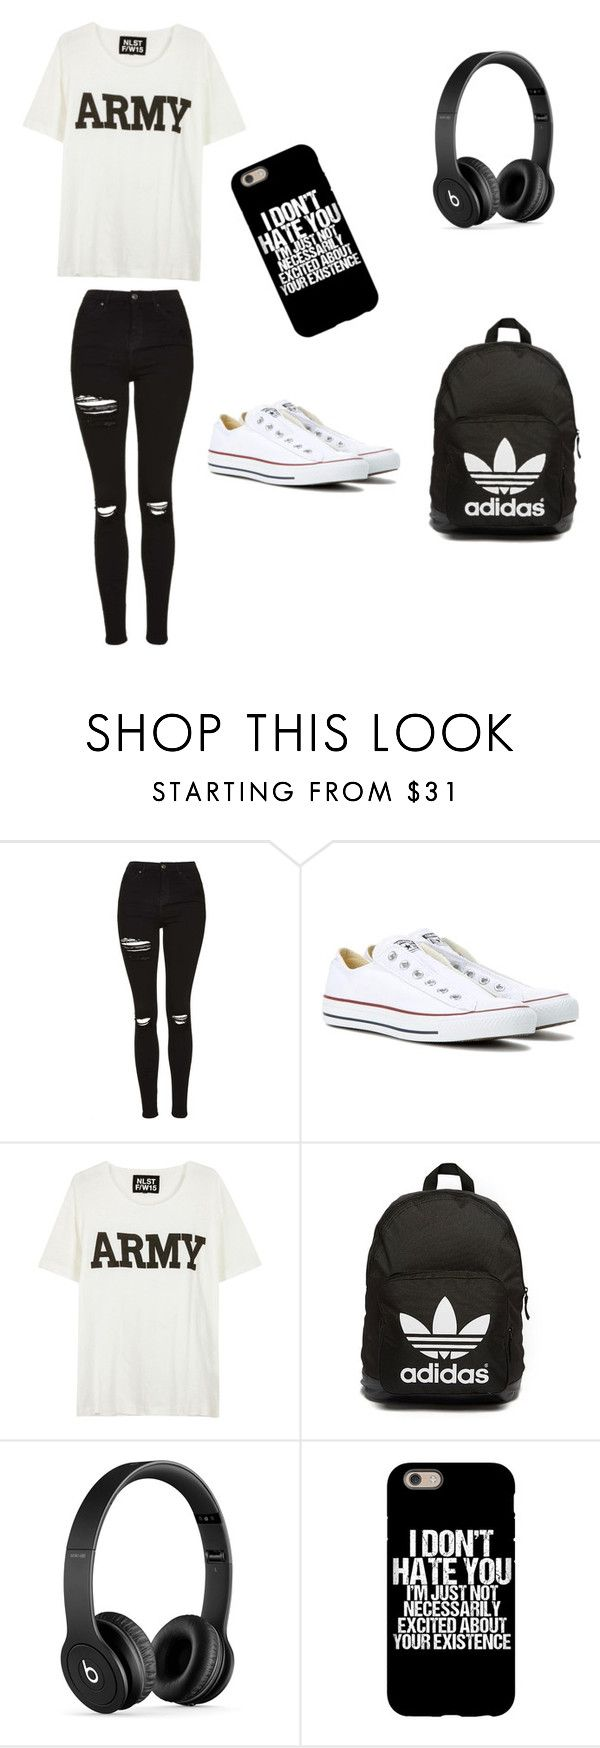 """Black n white"" by cllong32602 ❤ liked on Polyvore featuring Topshop, Converse, NLST, adidas Originals and Beats by Dr. Dre"